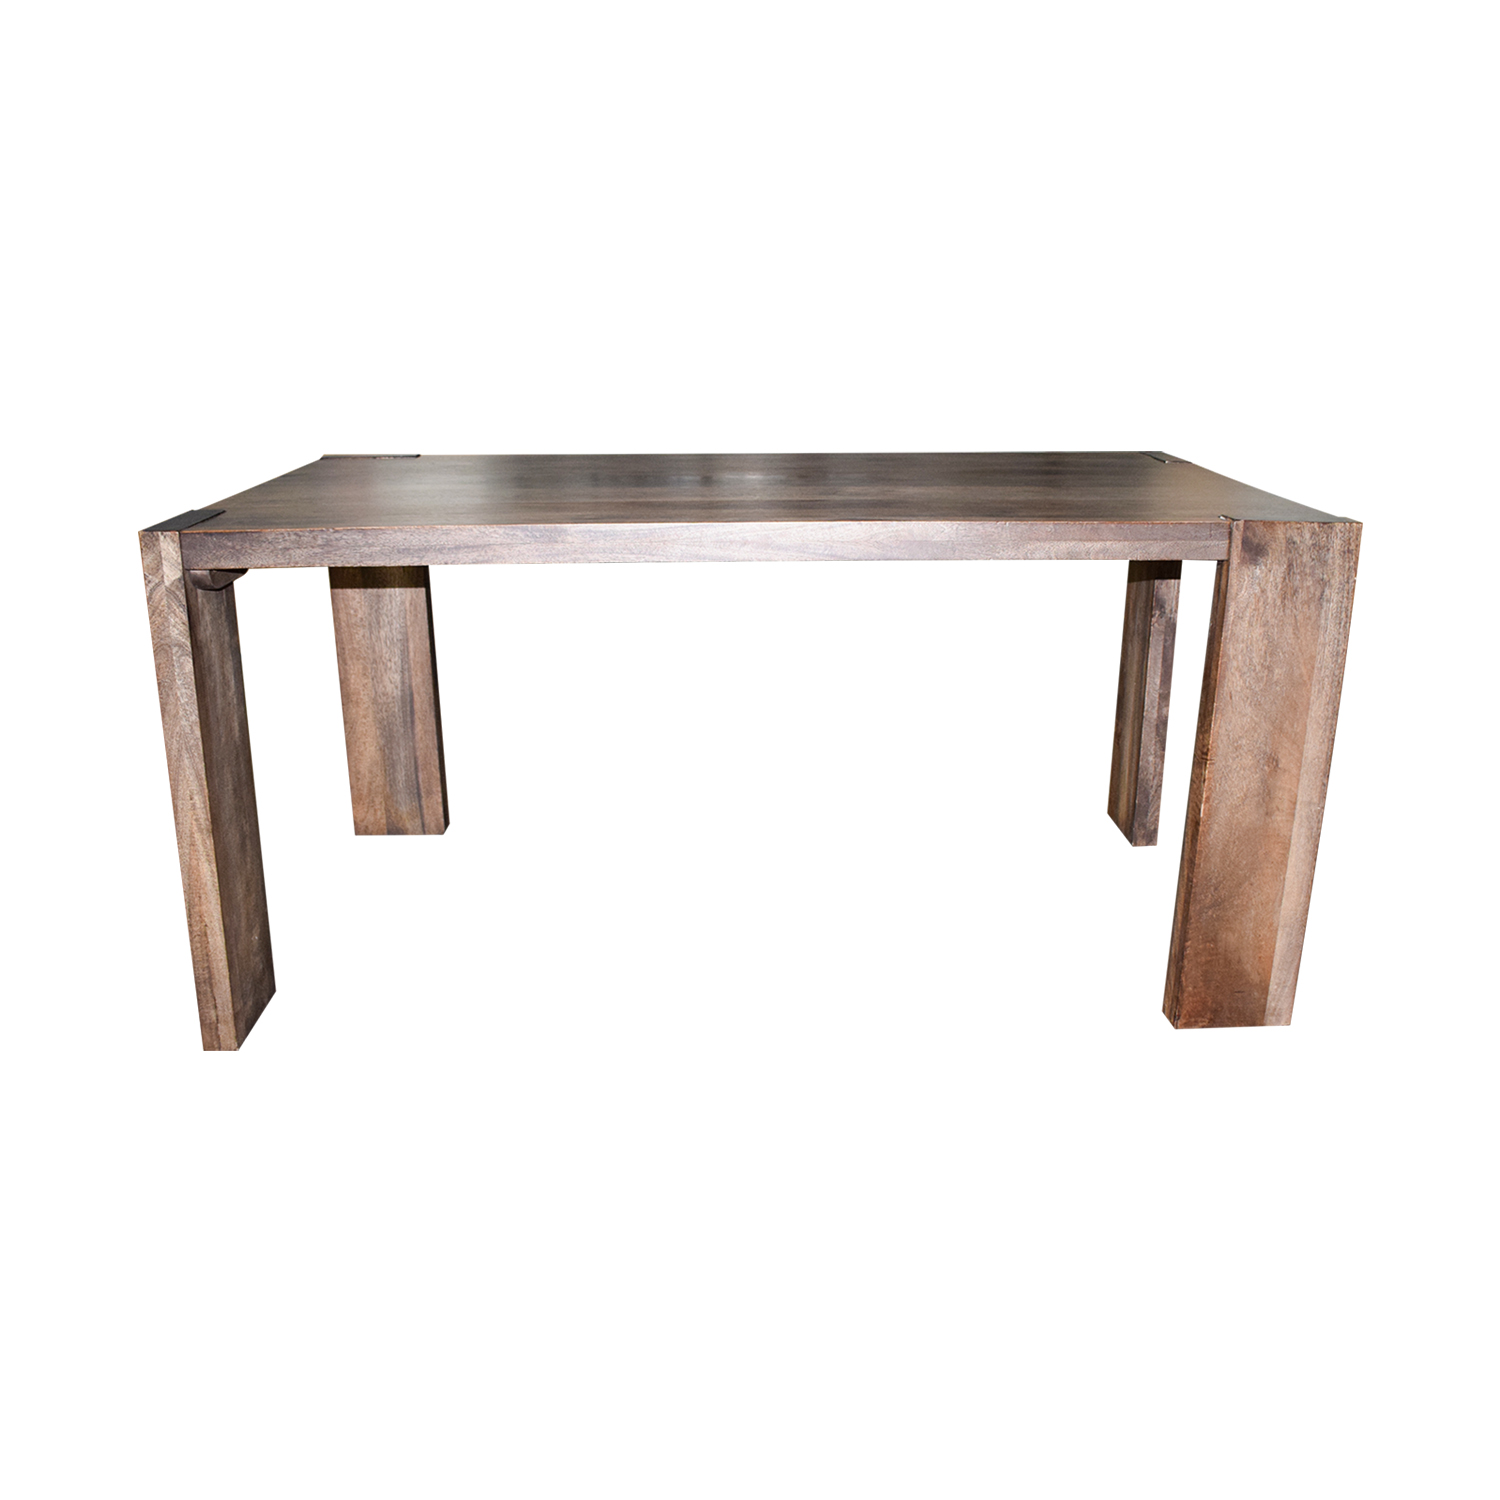 CB2 CB2 Rustic Wood Dining Table price